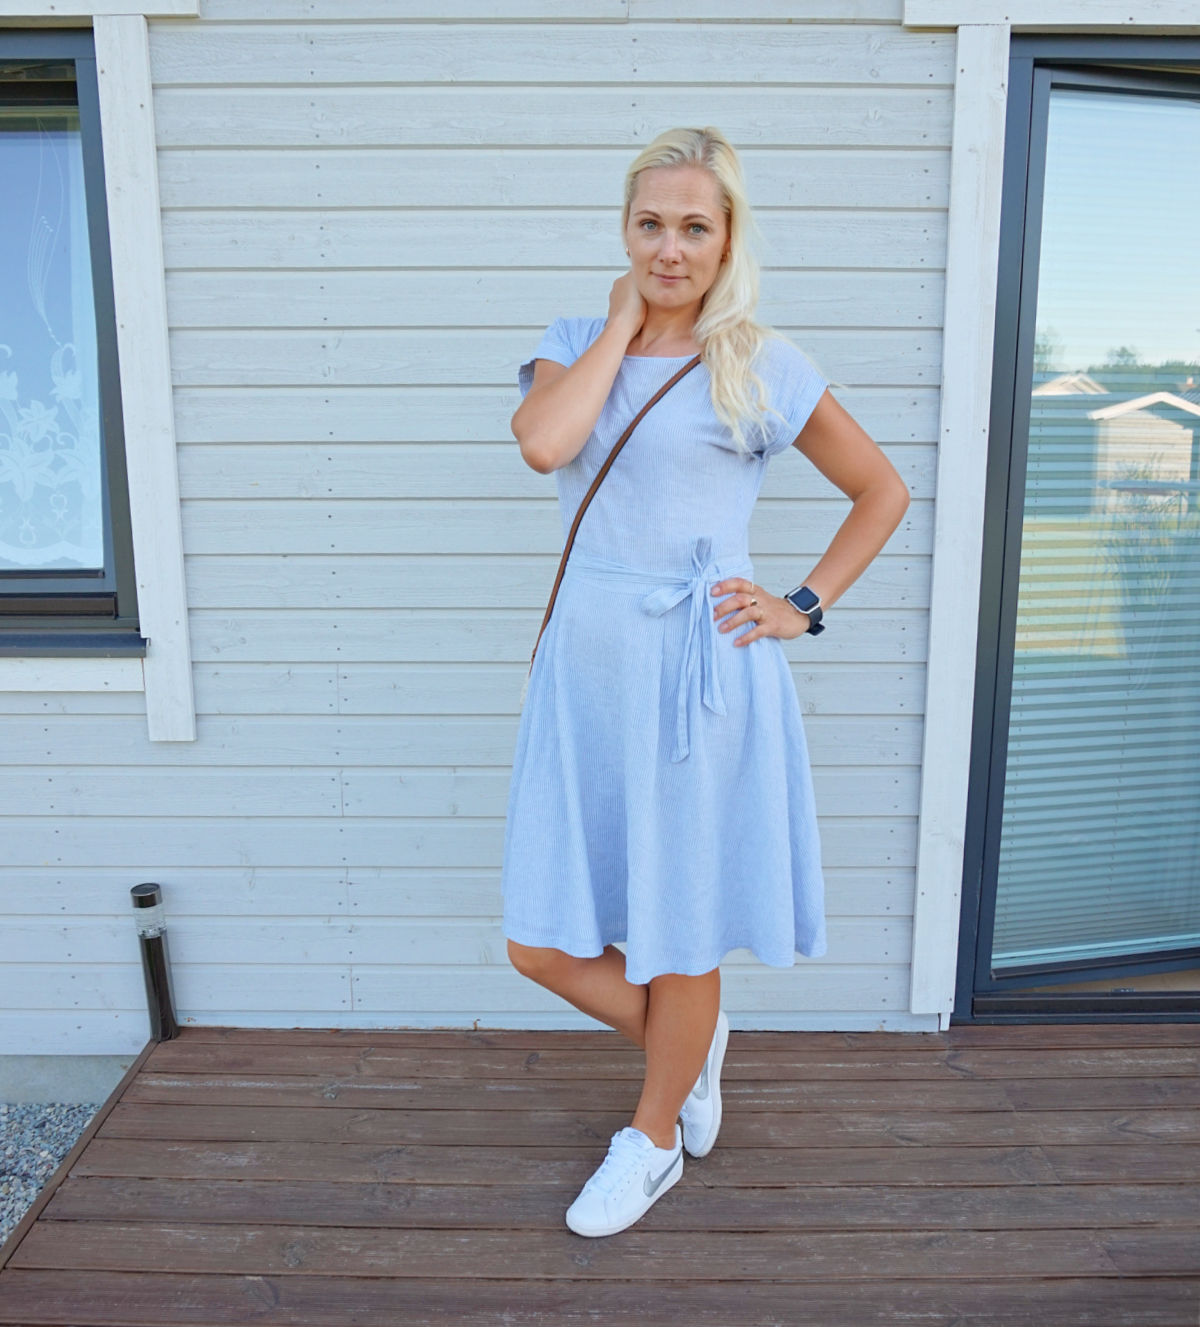 Striped fit and flare summer dress paired with white trainers